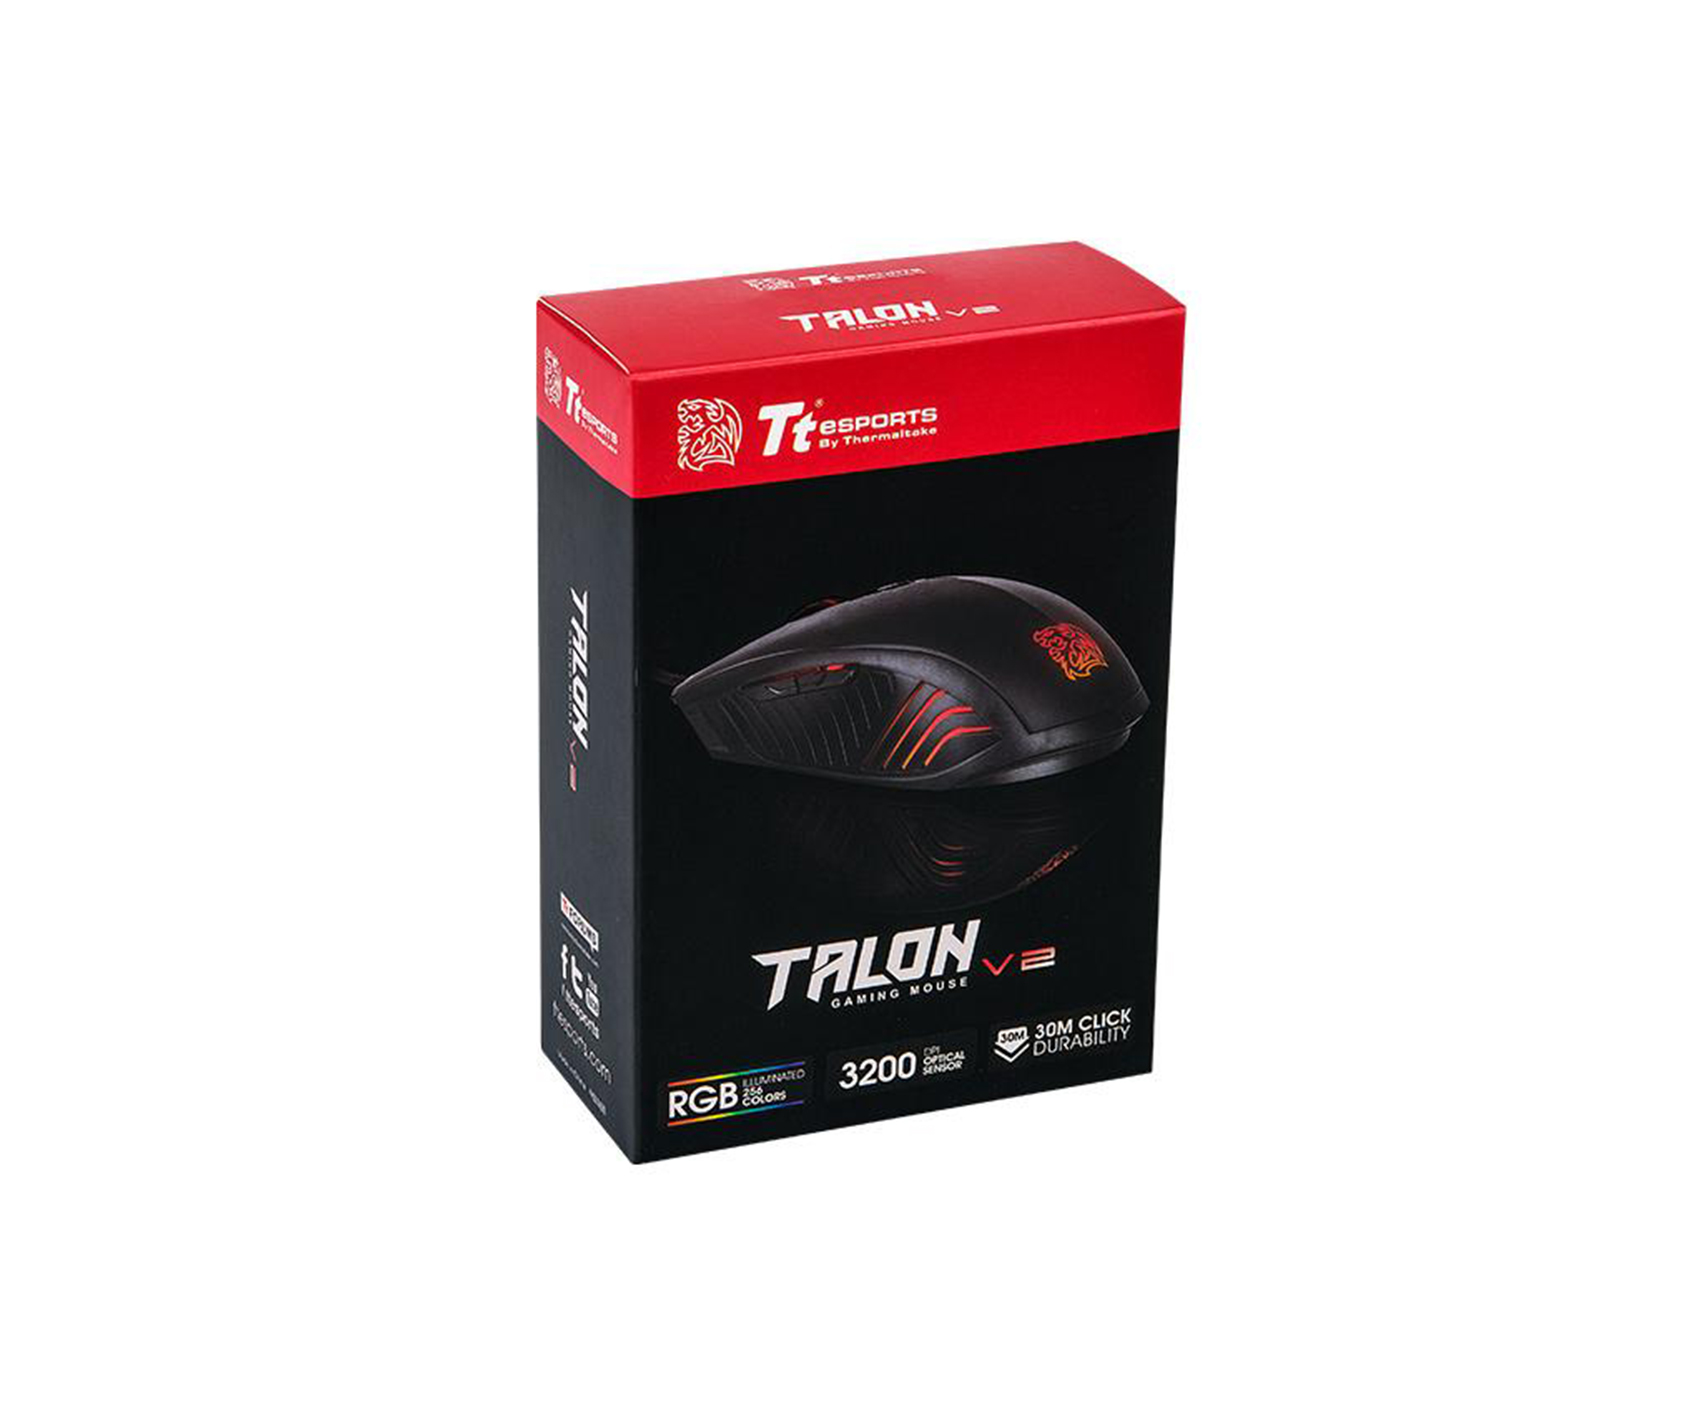 Thermaltake Ttesports Talon V2 Wired Mouse